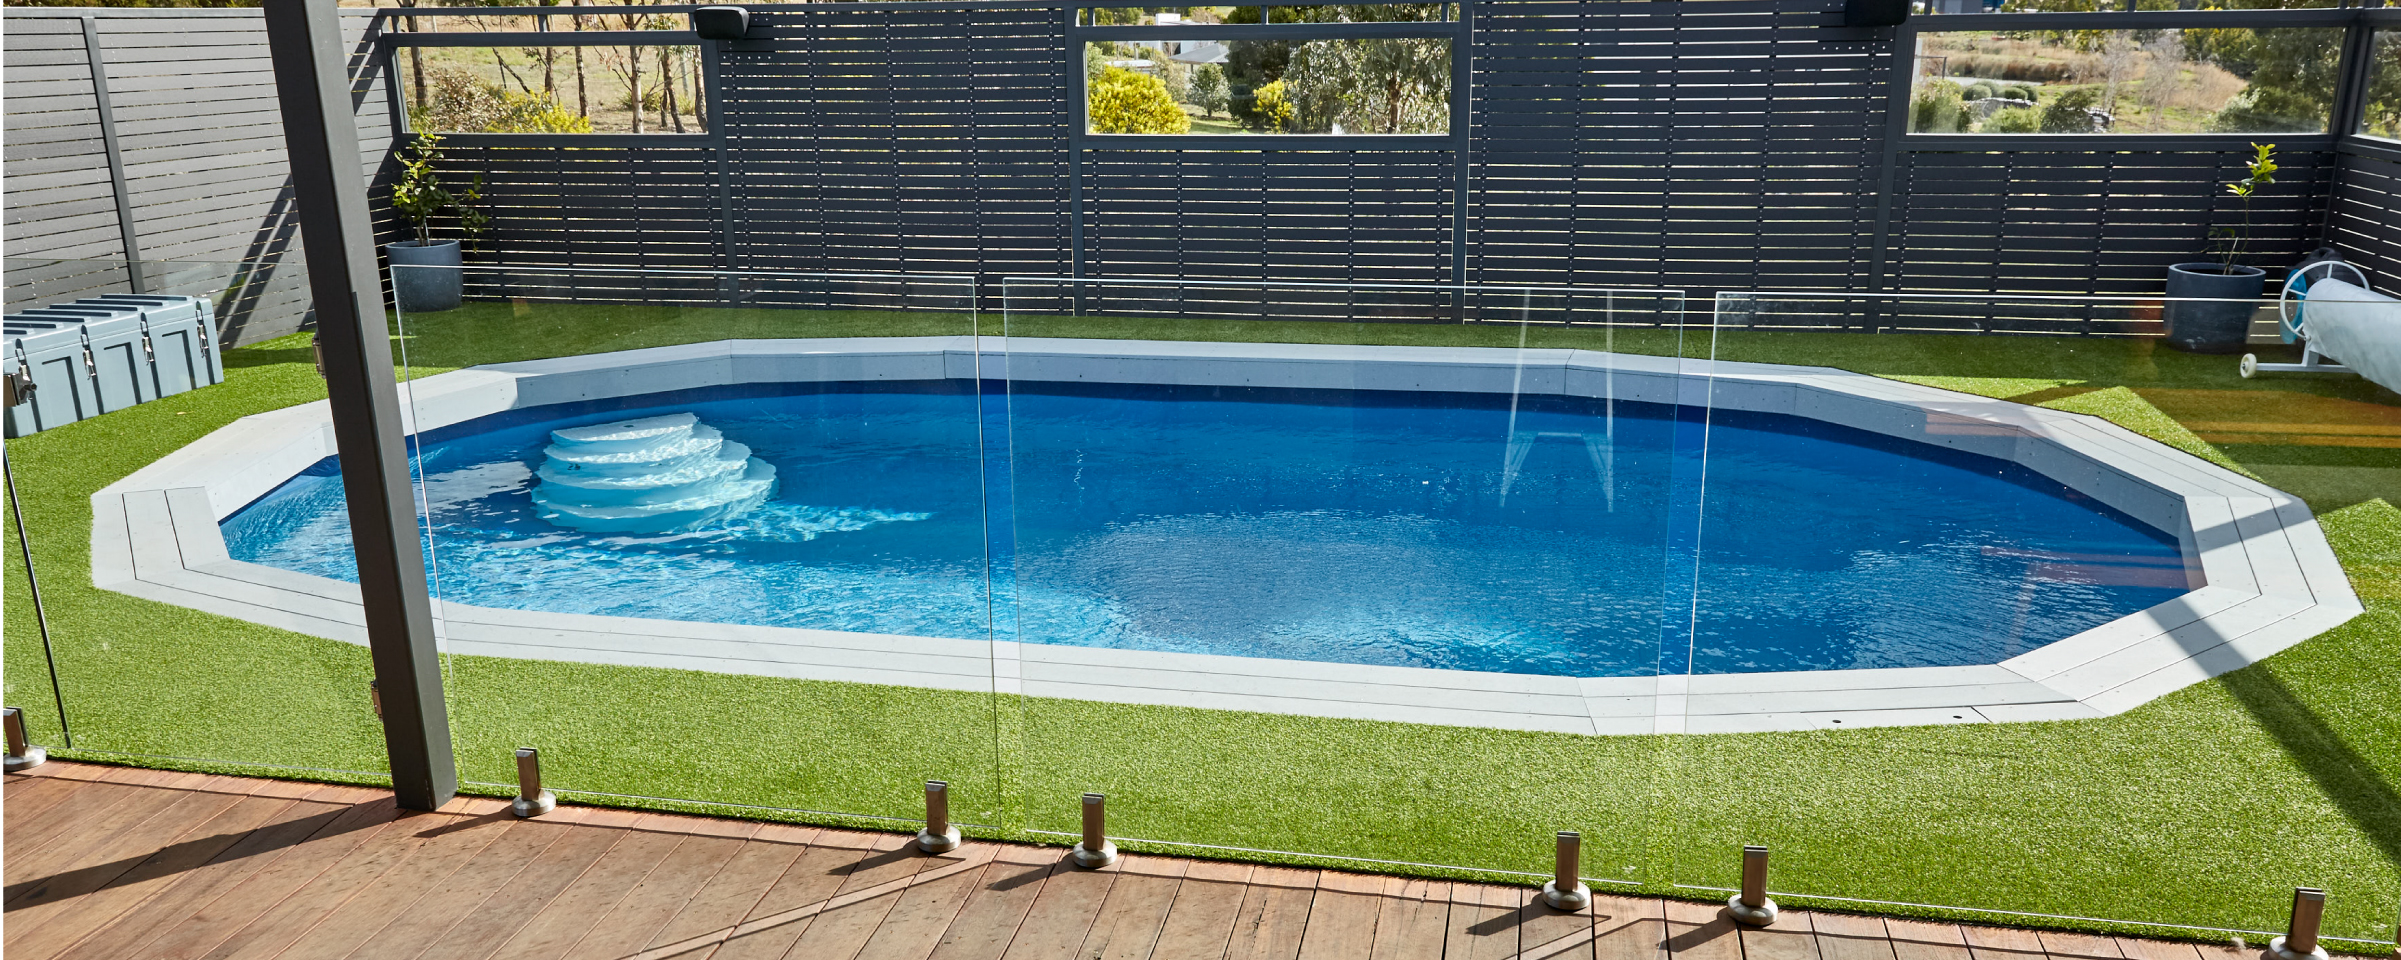 Above Ground Swimming Pools | Intex, Salt Water & More ...